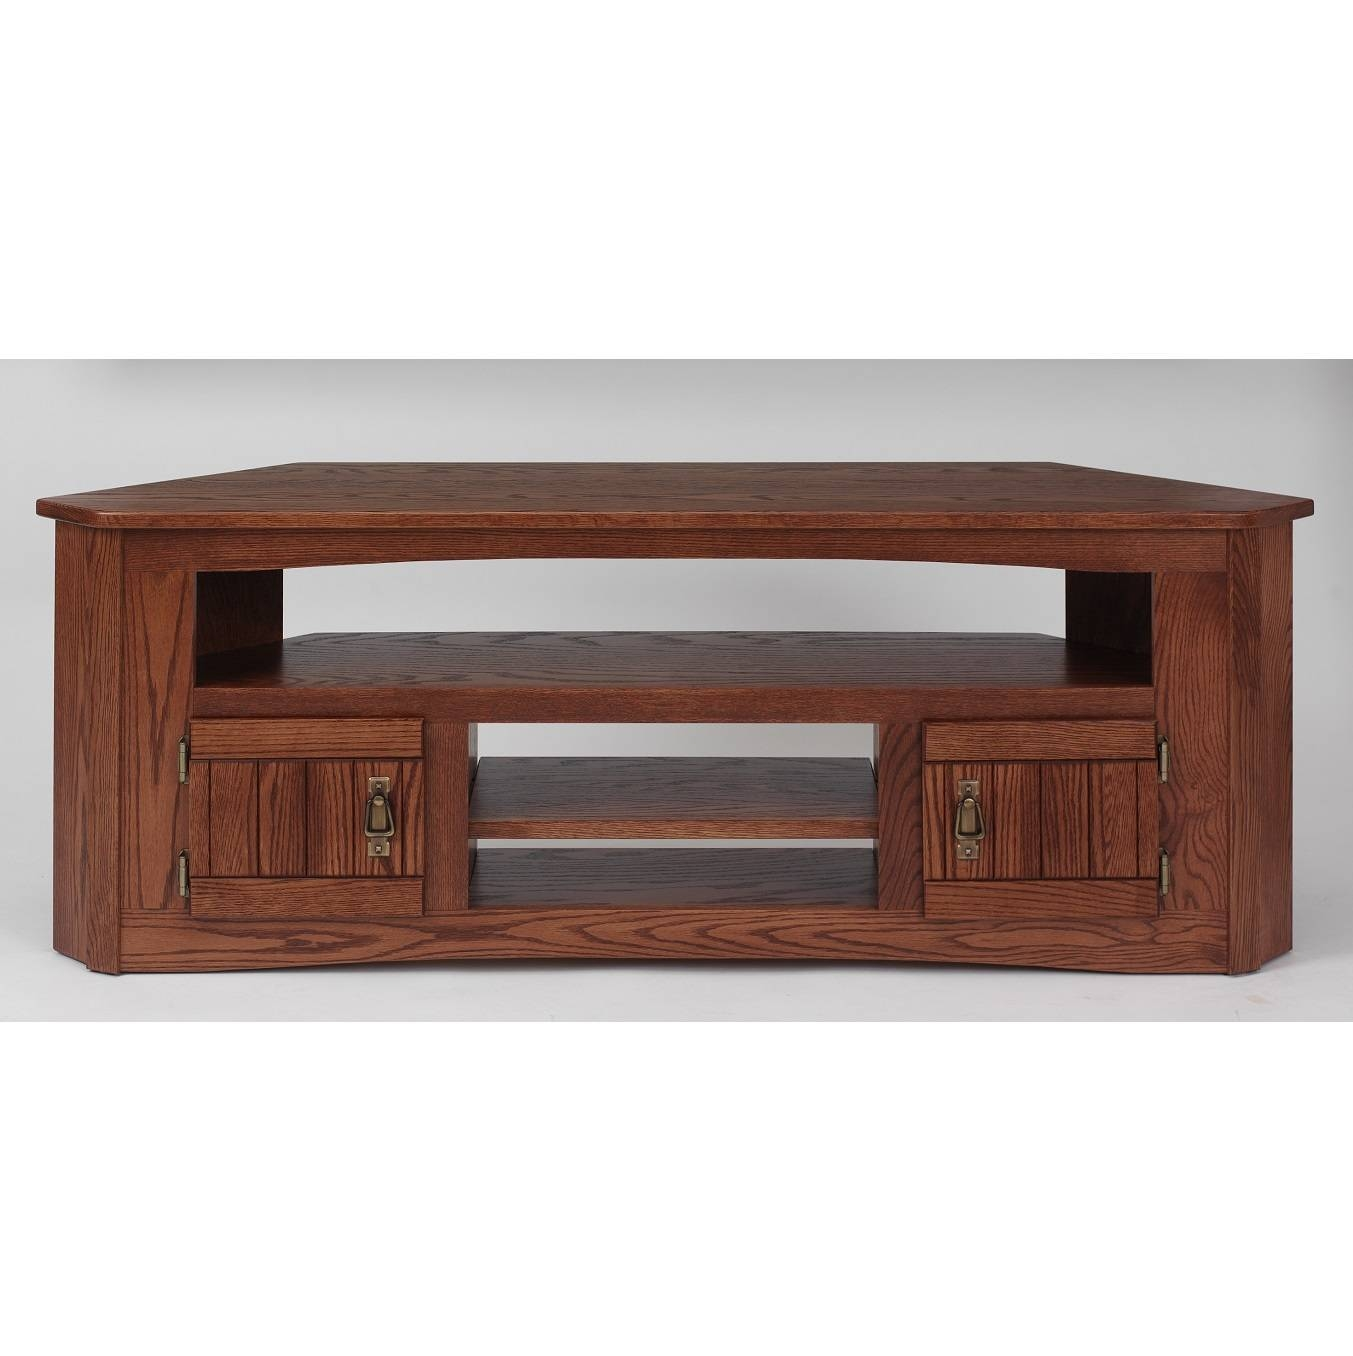 Solid Oak Mission Style Corner Tv Stand – 61″ – The Oak Furniture Shop pertaining to Oak Corner Tv Stands (Image 11 of 15)